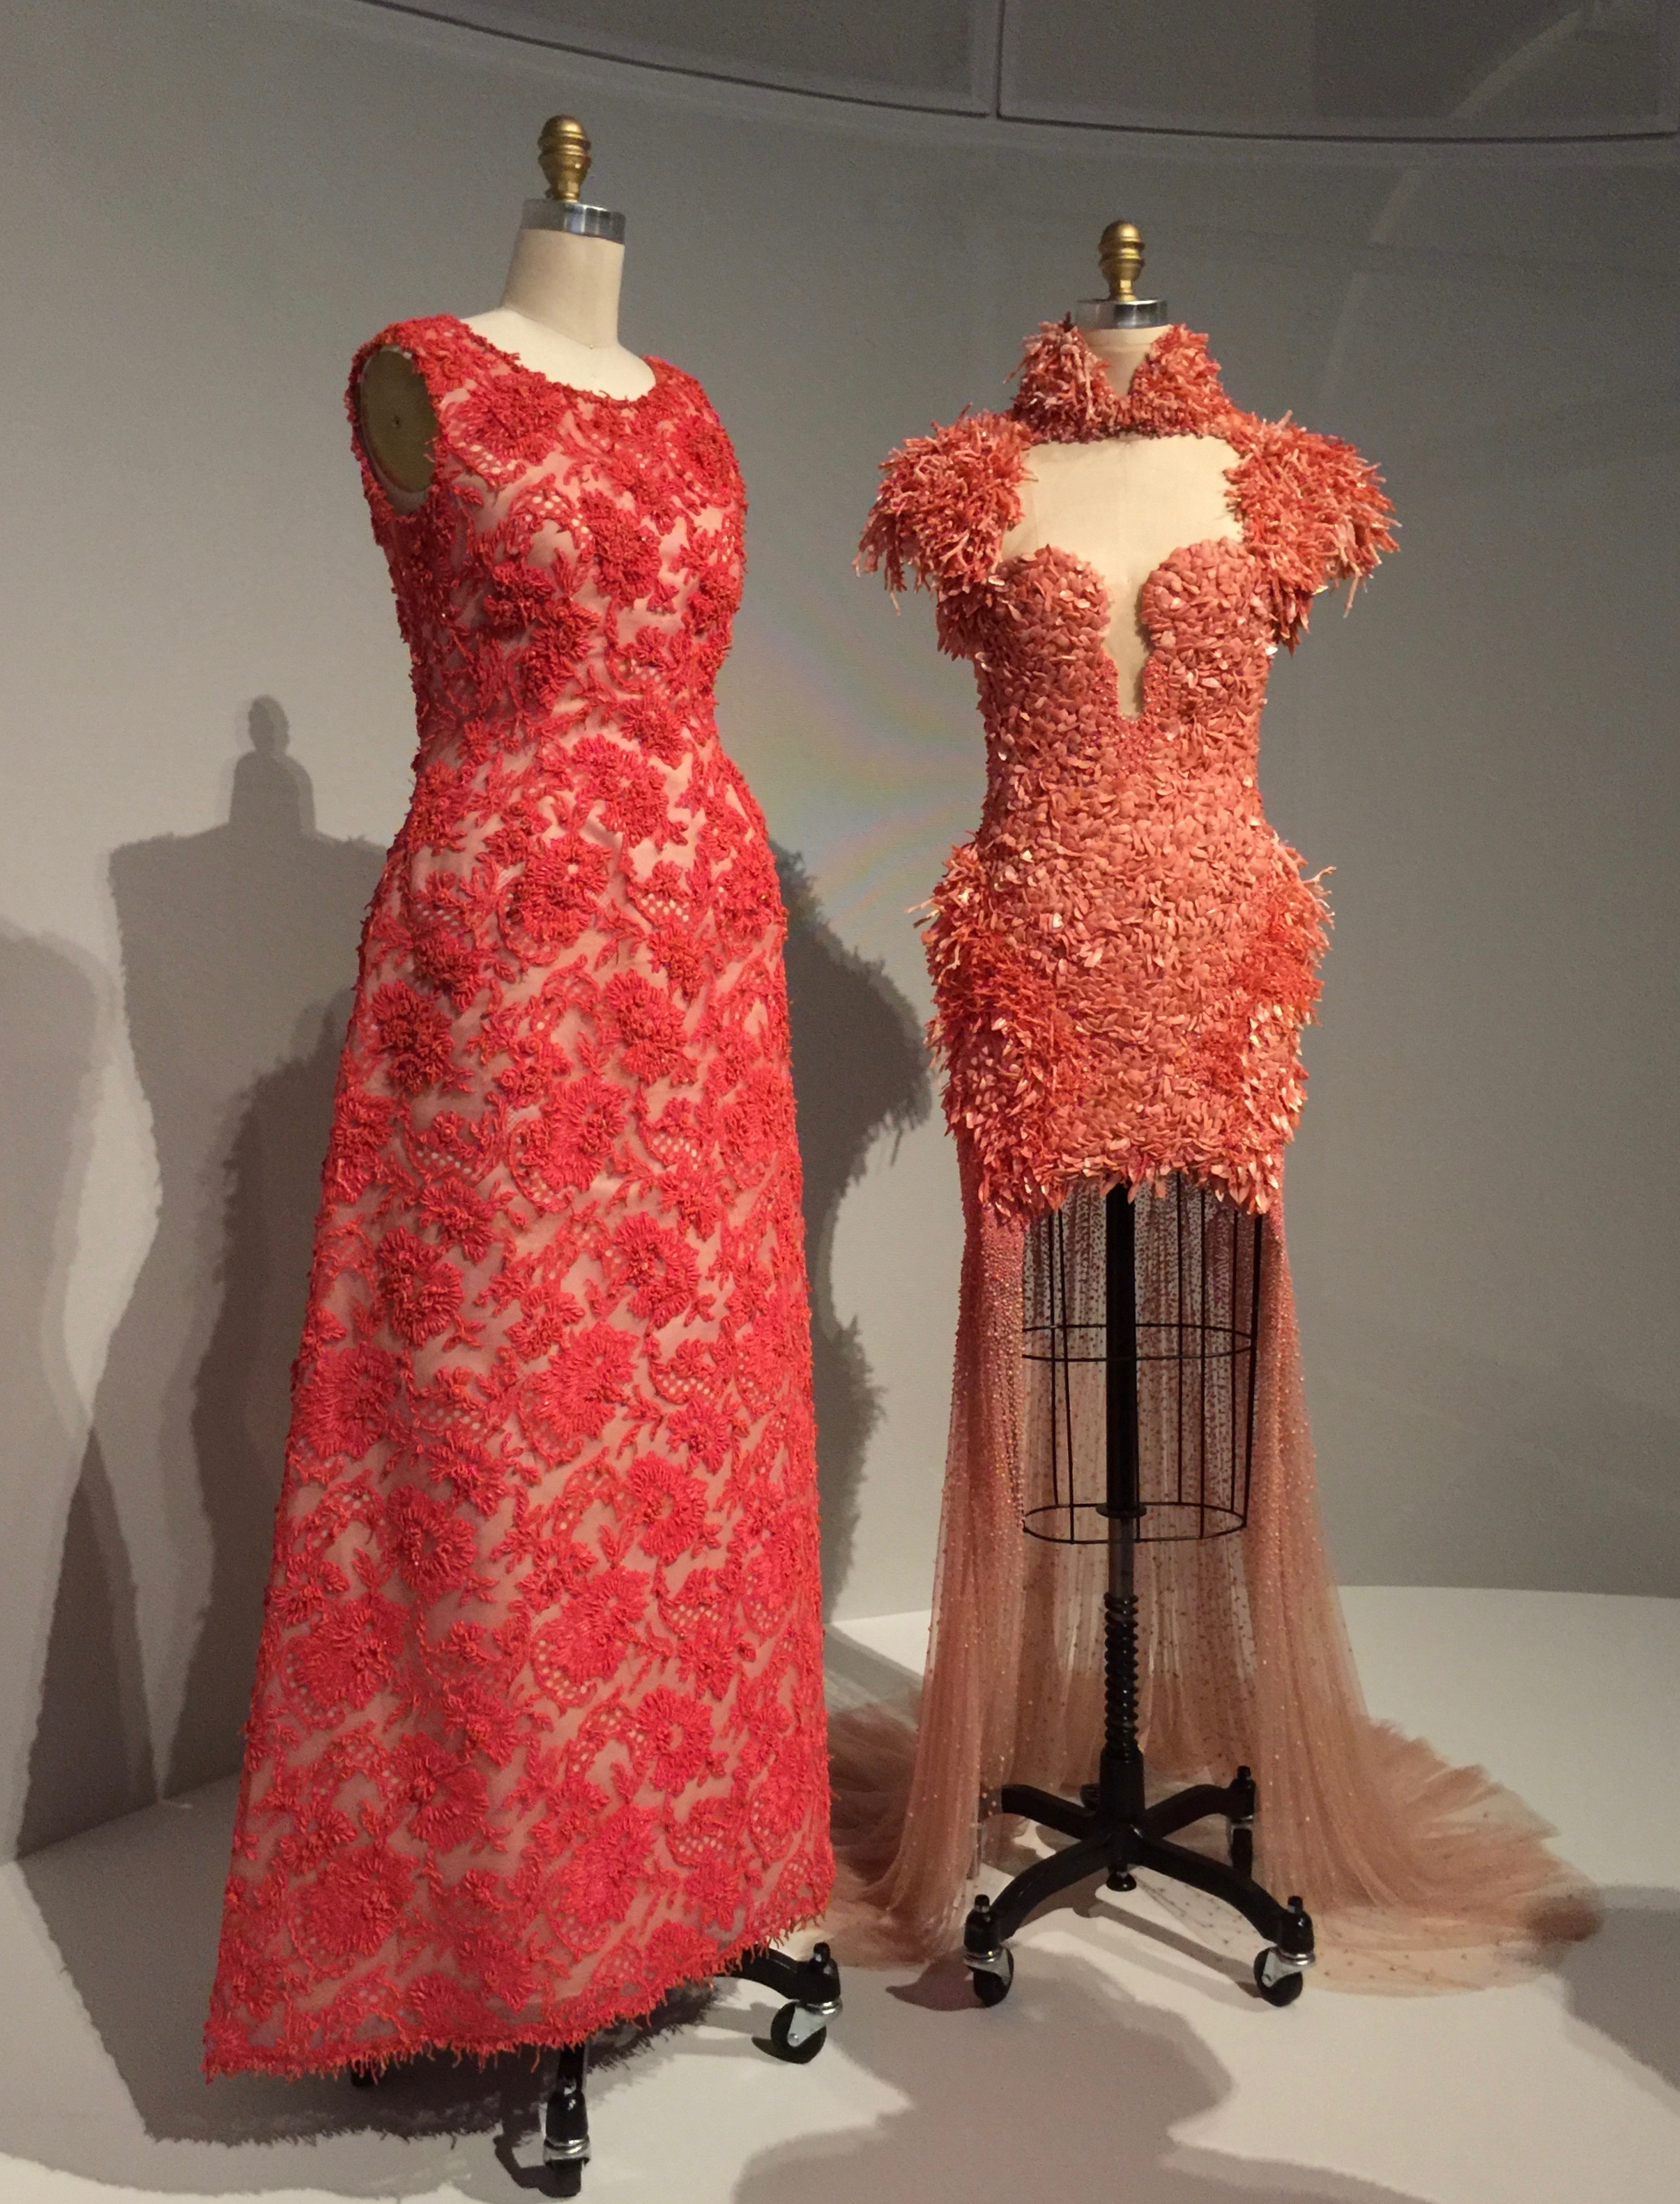 (l) HOUSE OF GIVENCHY, Hubert de Givenchy DRESS, 1963, haute couture  Hand-sewn red-orange cotton Mechlin-type lace hand-embroidered with red-orange glass beads, tinsel, and pieces of coral  (r) ALEXANDER MCQUEEN, Sarah Burton DRESS, Spring/Summer 2012,pret-a-porter